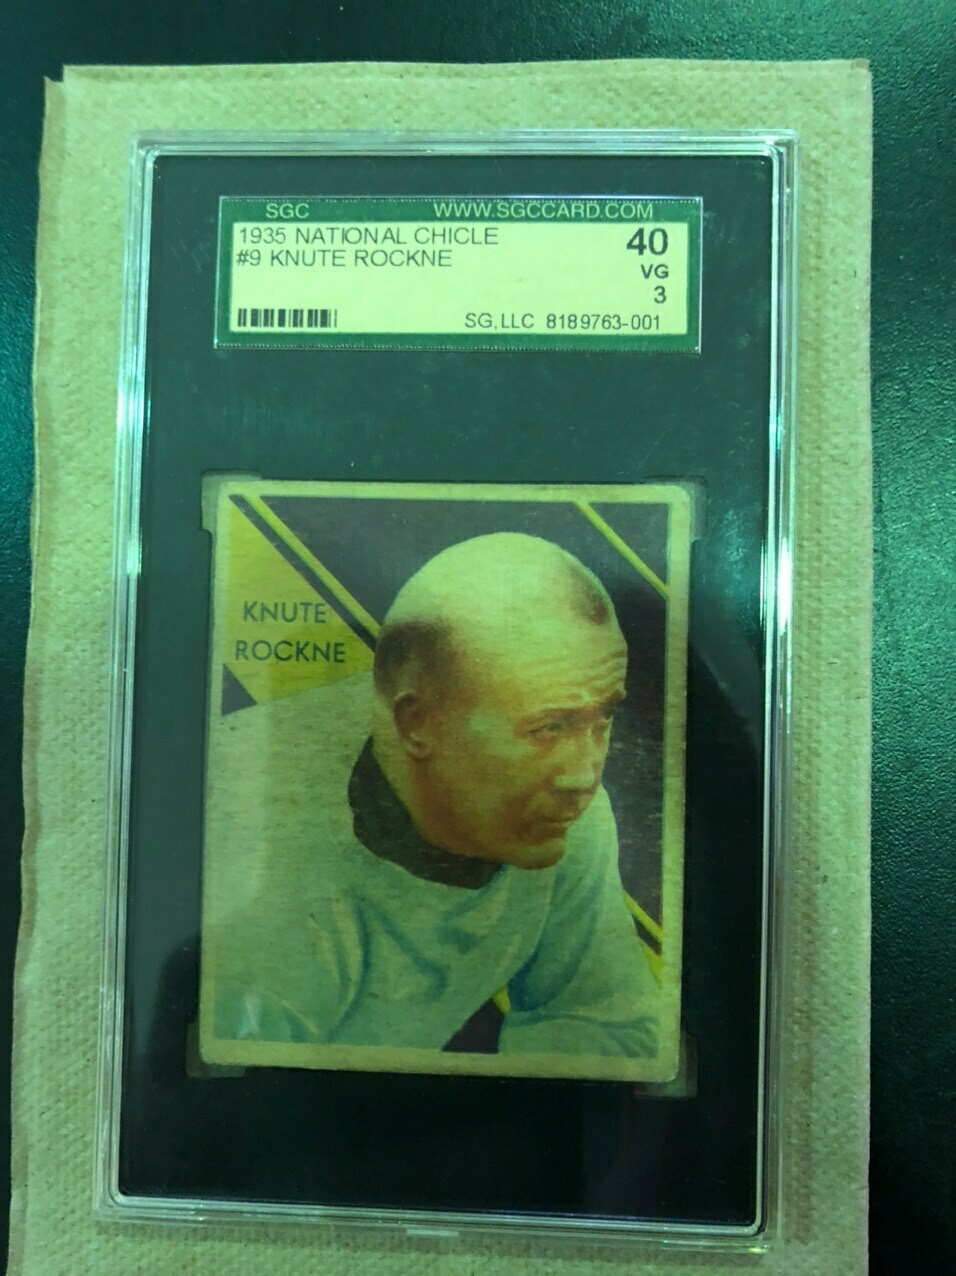 1935 National Chicle #9 Knute Rockne SGC graded 3, List $1600, Sell $795